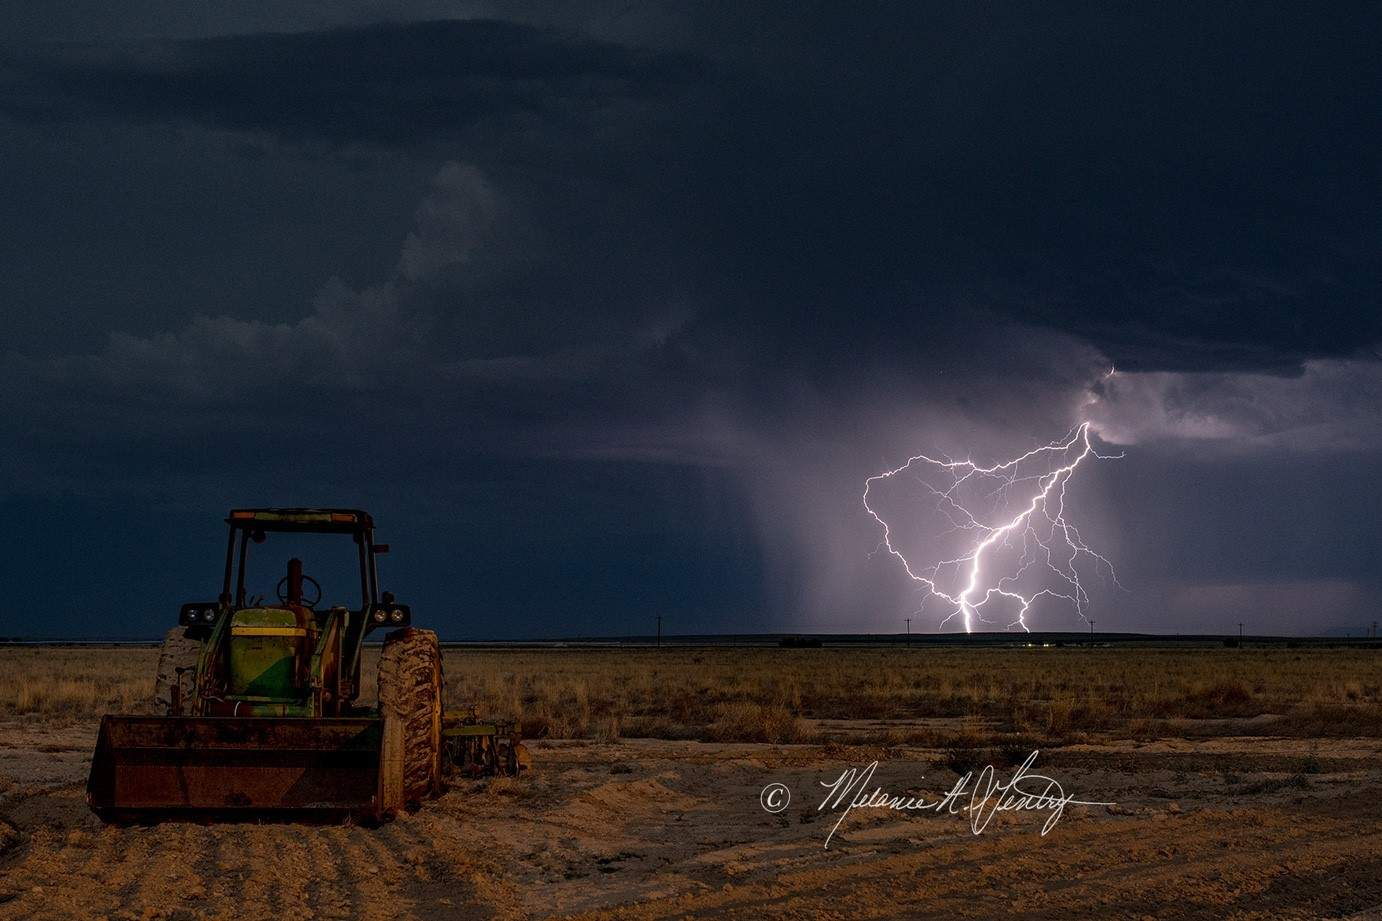 The 'ol John Deere was still in a prime location for another round of storms in far west Texas and southern NM last night.